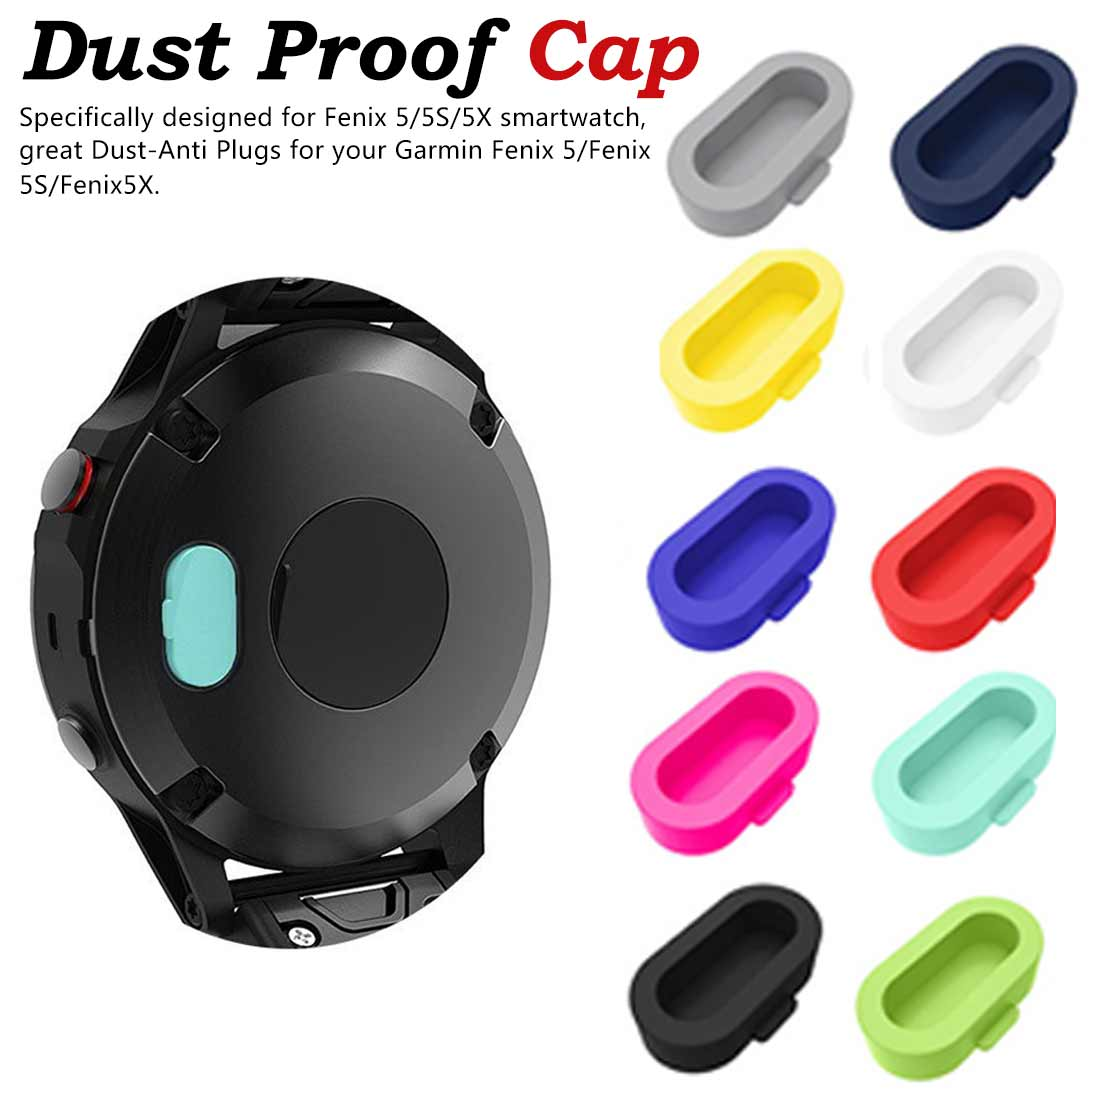 Dust Proof Cap For Garmin Fenix 5/5X/5S Plus Wristband Port Protector Resistant And Anti-dust Plugs New Fashion l1015#2